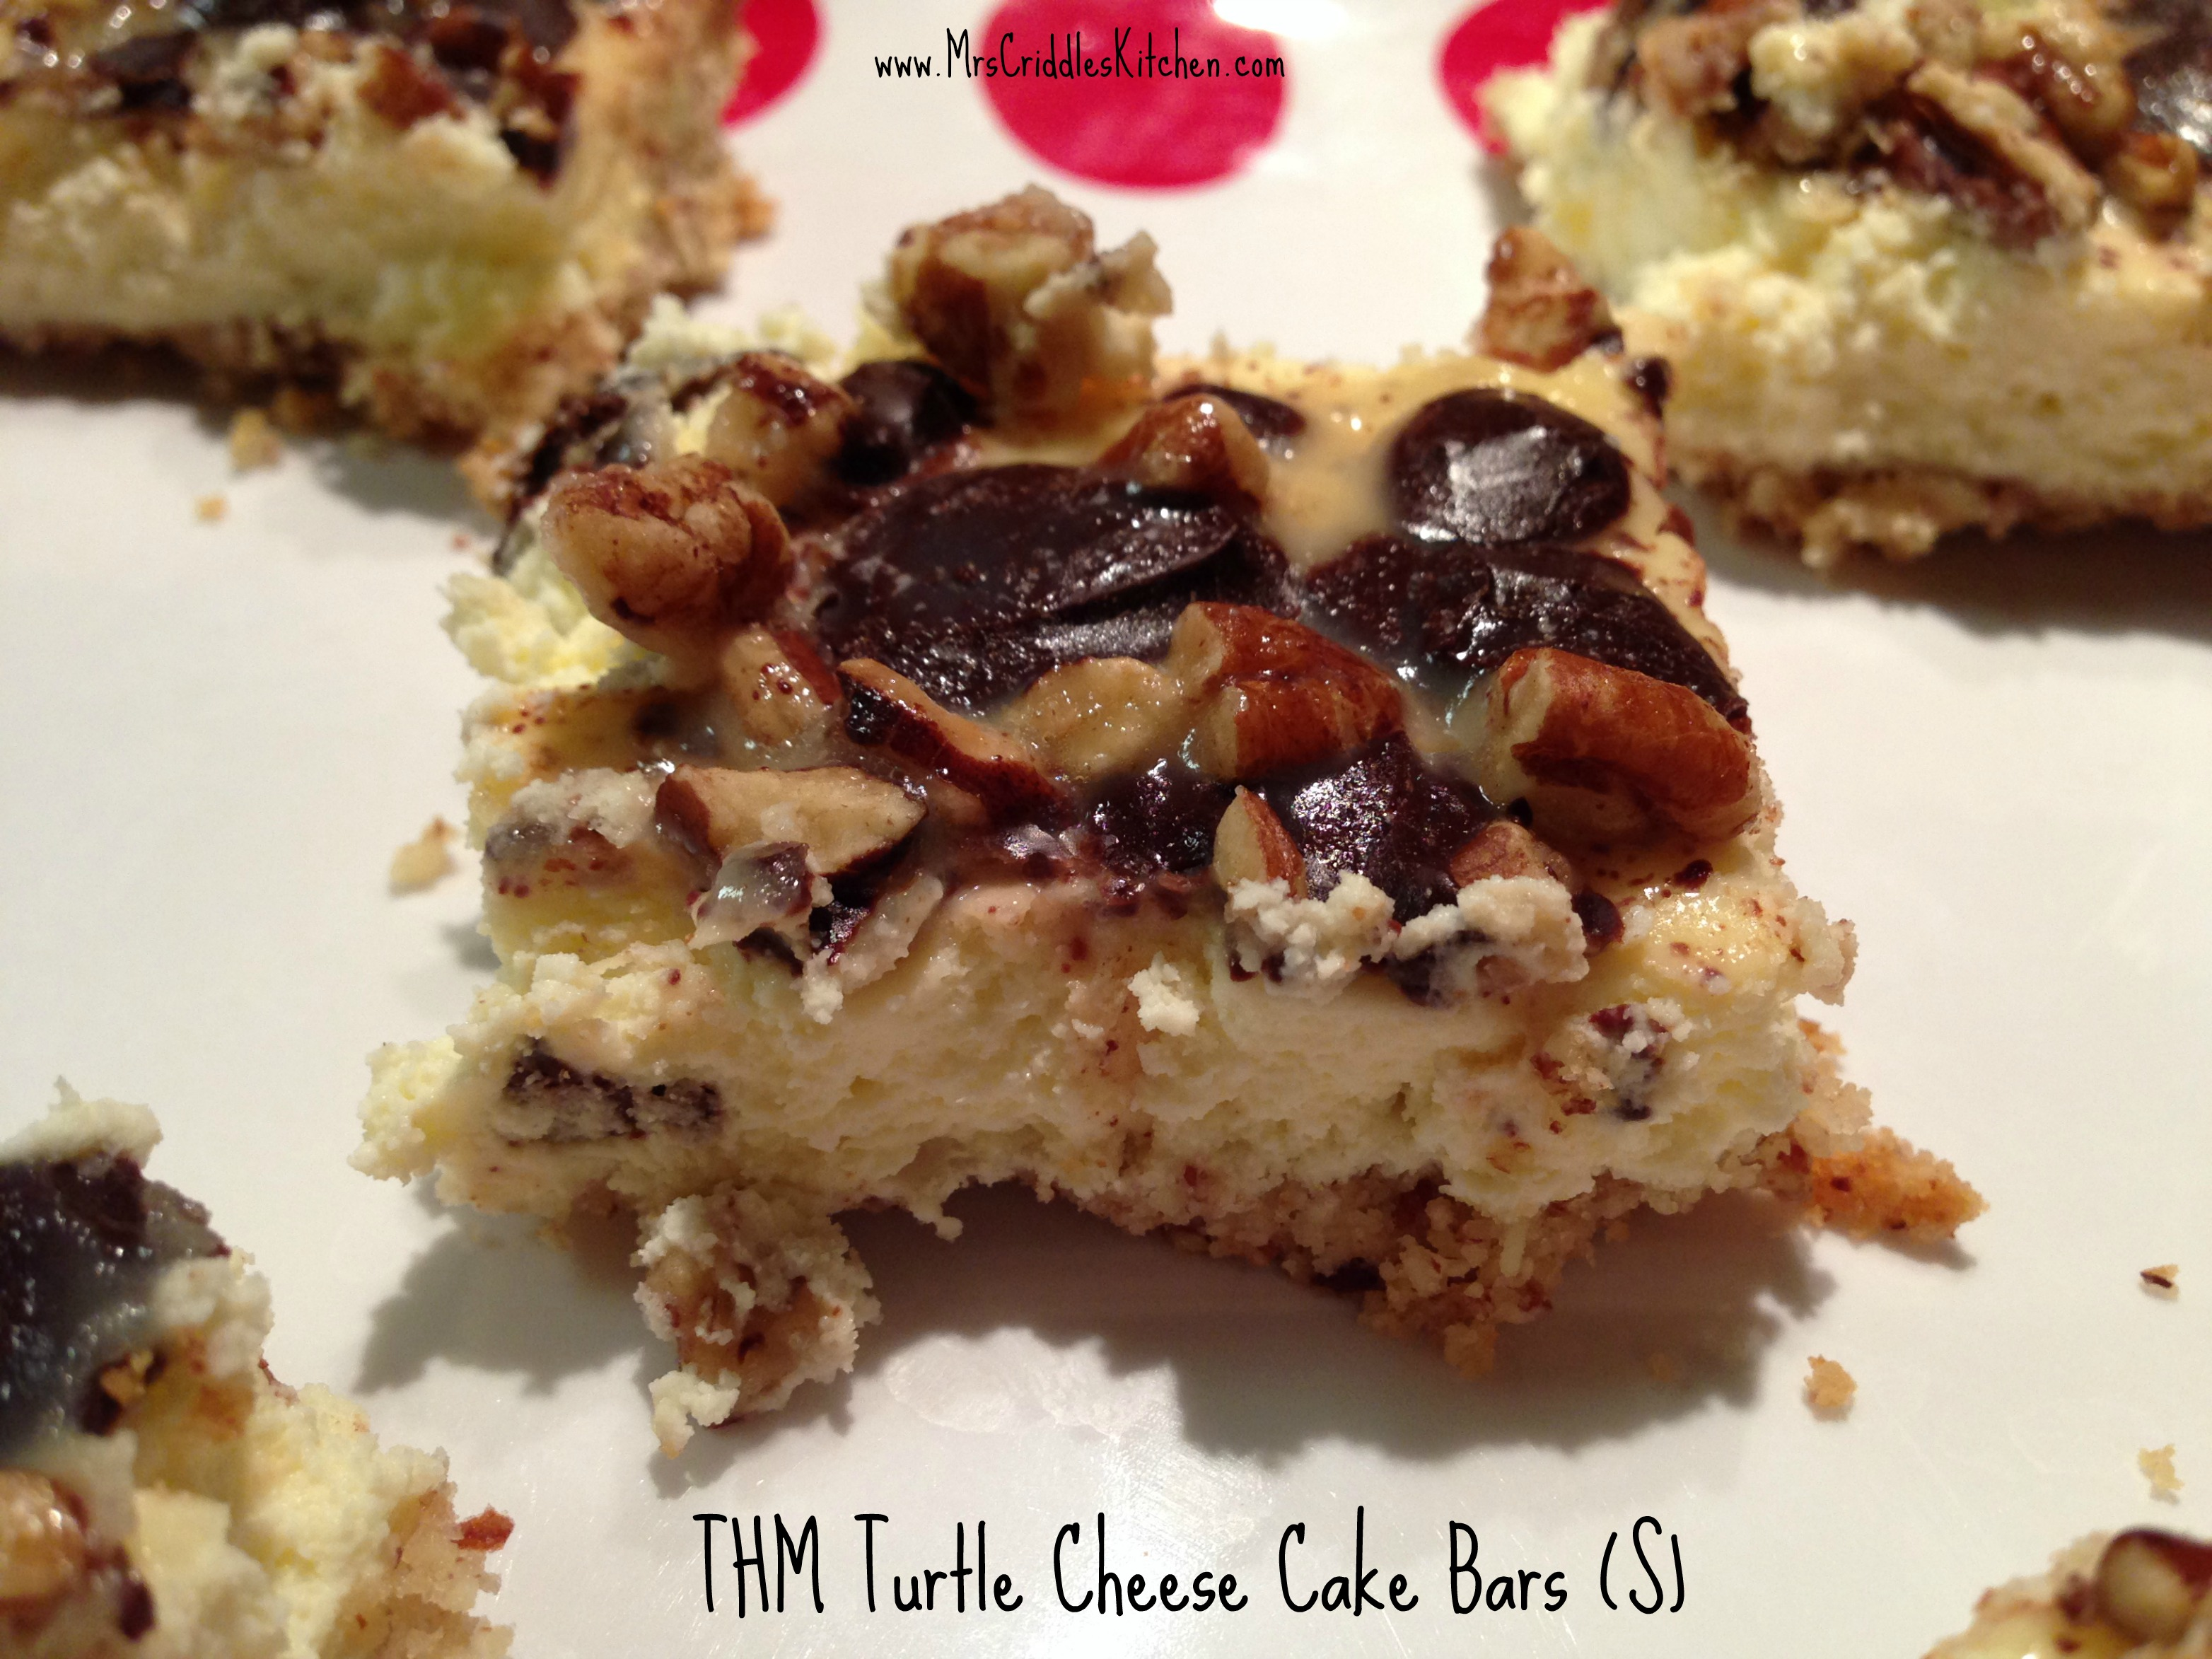 THM Turtle Cheesecake Bars (S) - Mrs. Criddles Kitchen